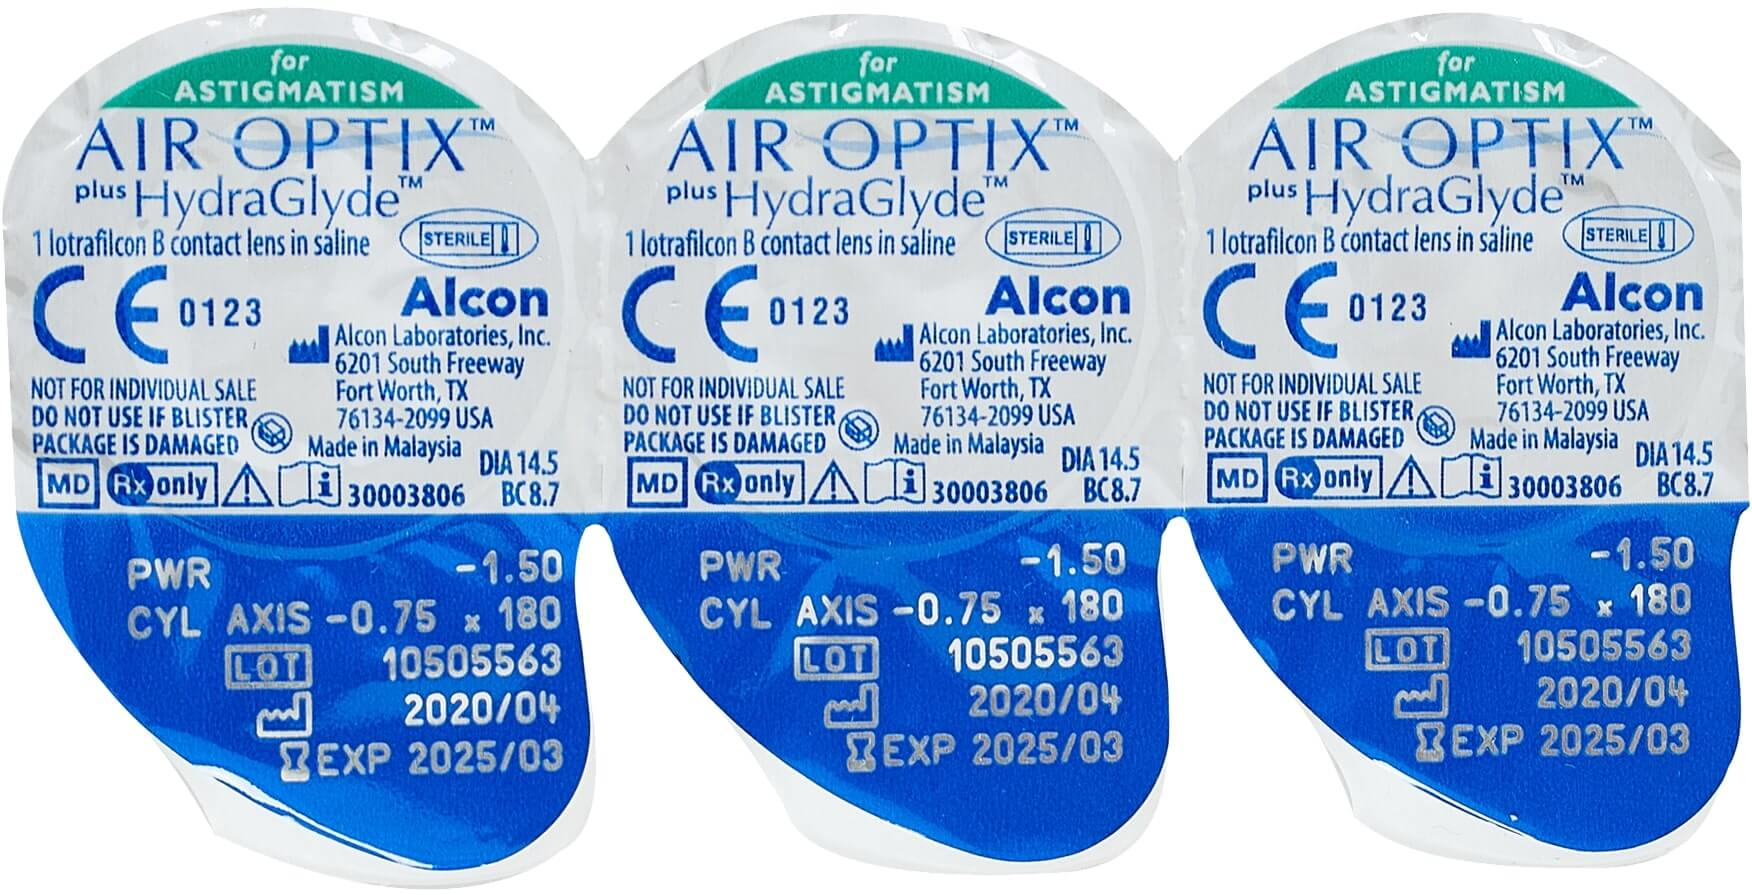 Alcon® AIR OPTIX® FOR ASTIGMATISM